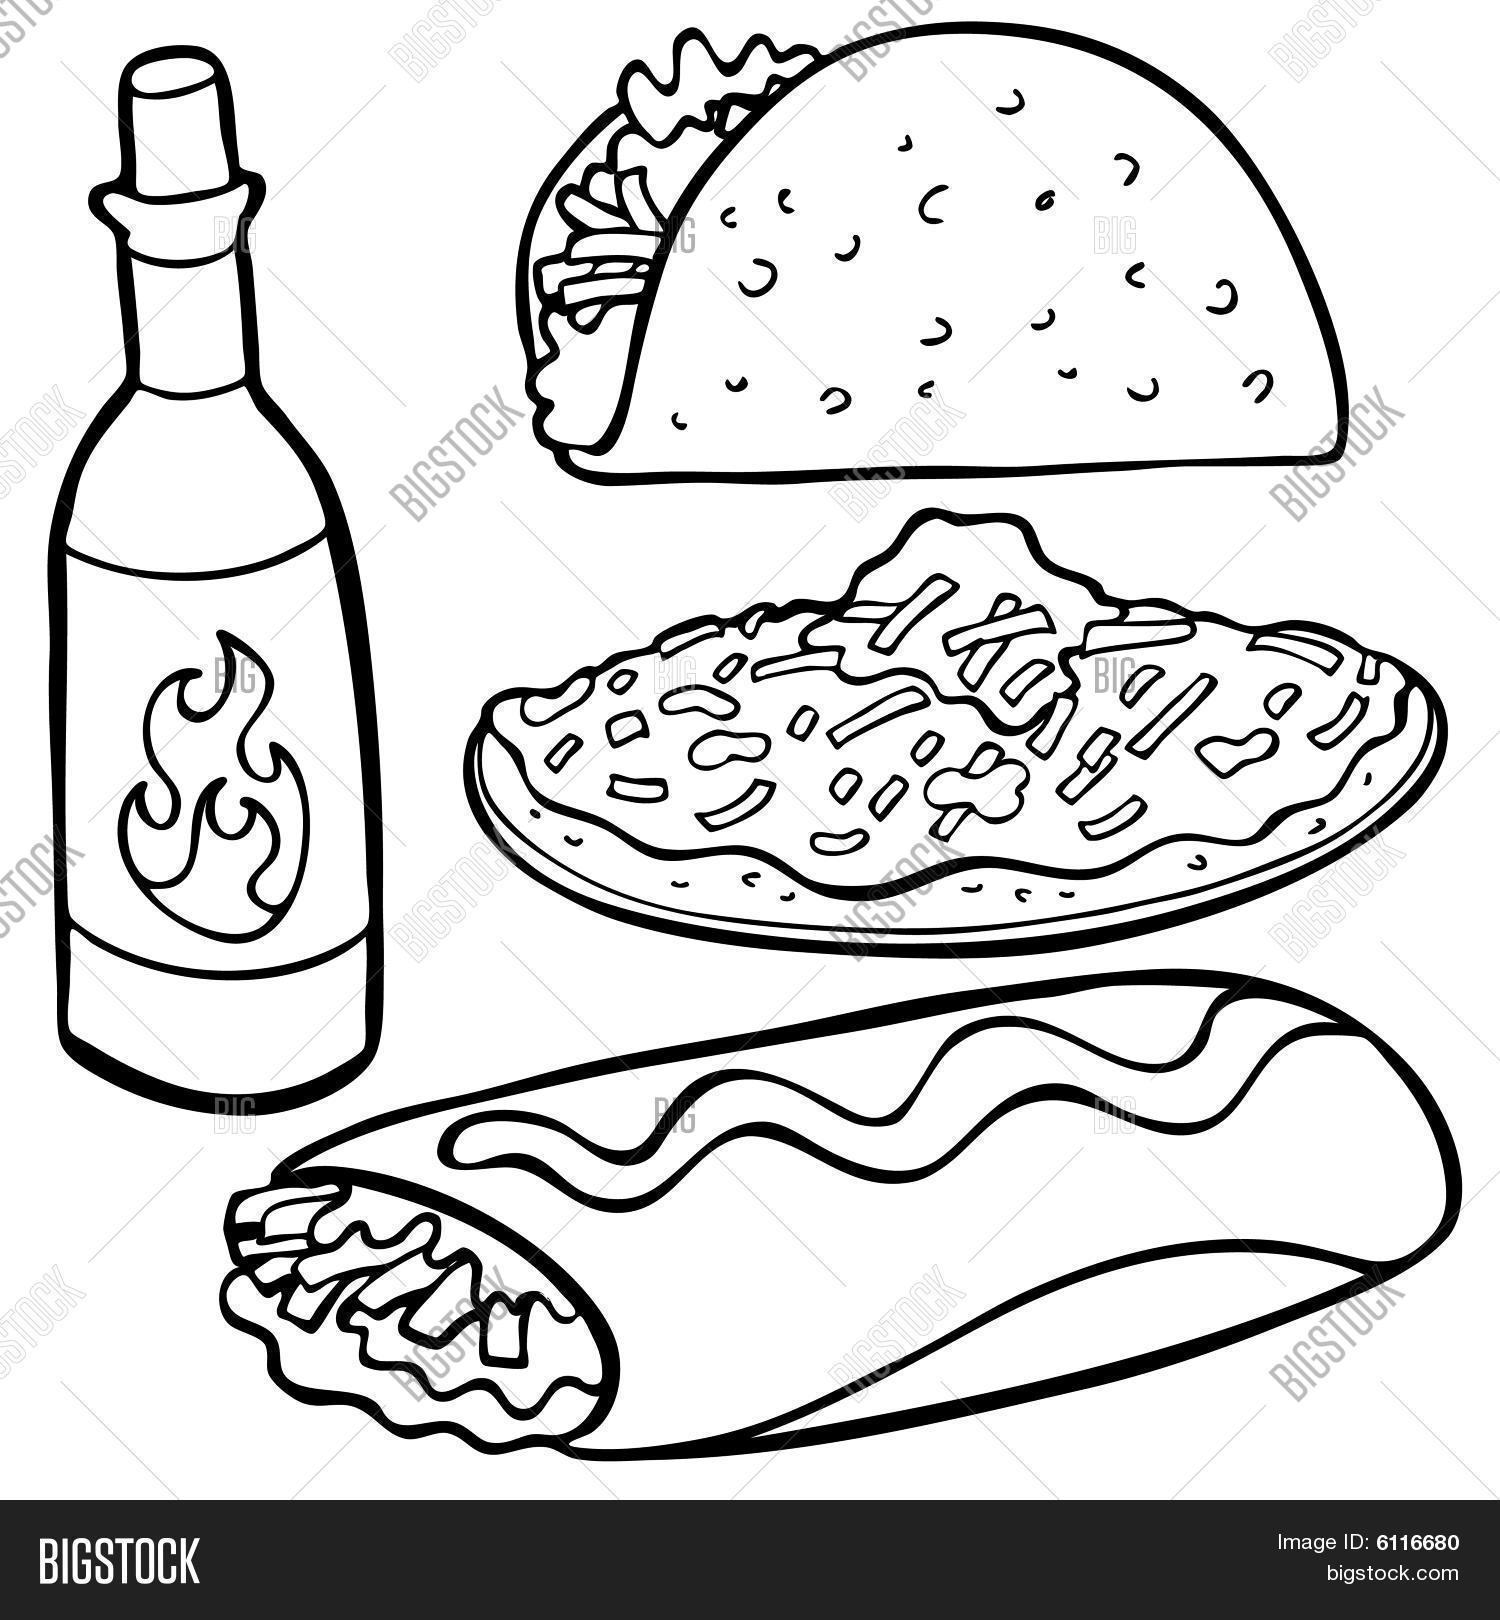 1500x1620 Mexican Food Drawings Mexican Food Graphics